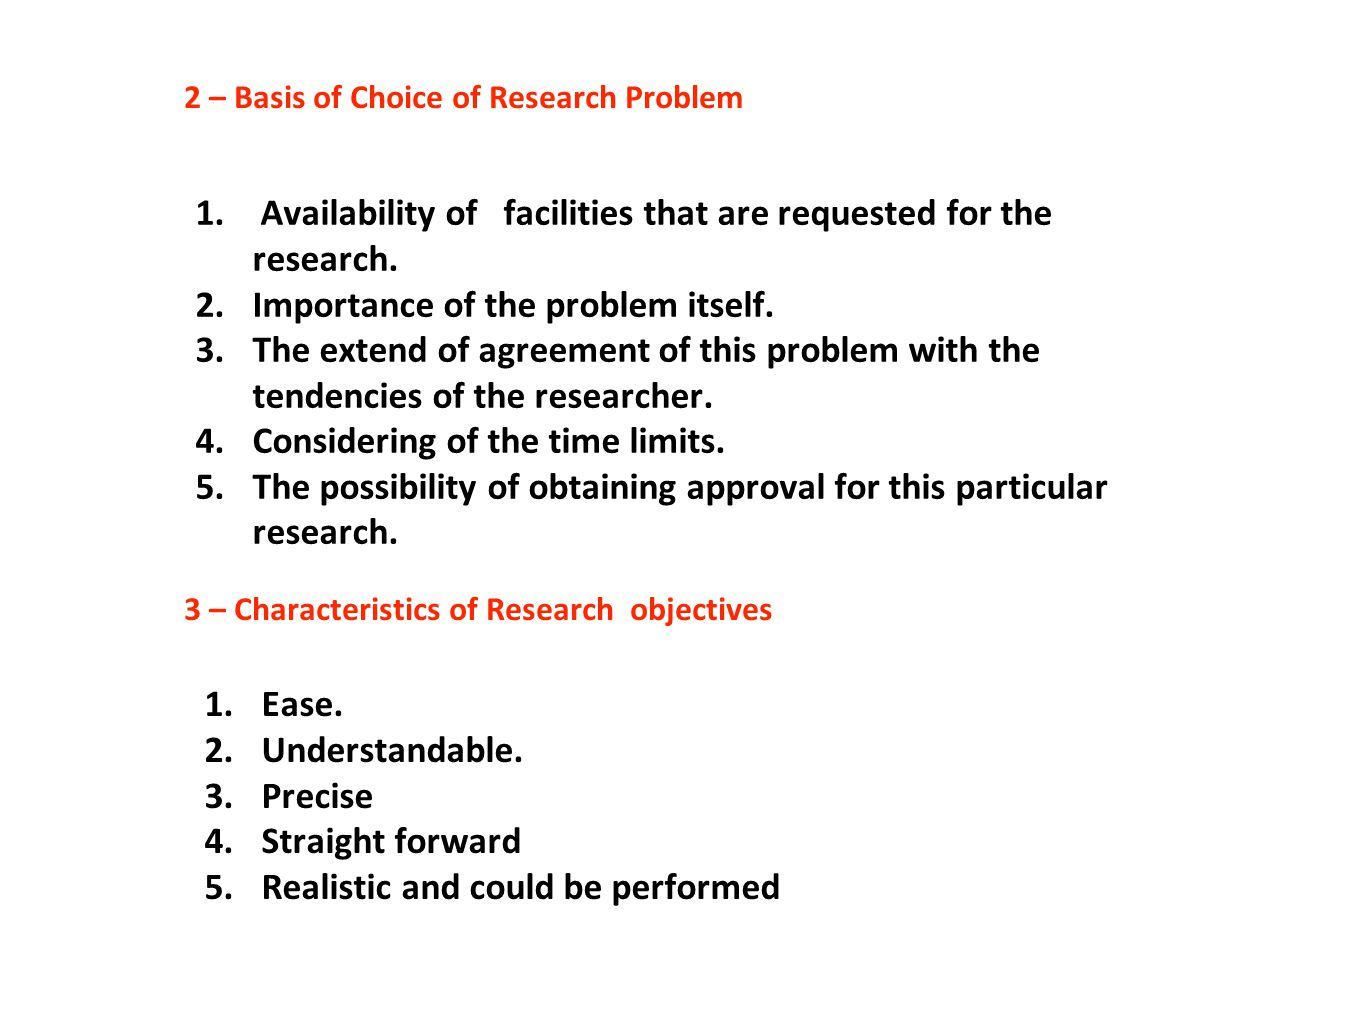 Availability of facilities that are requested for the research.